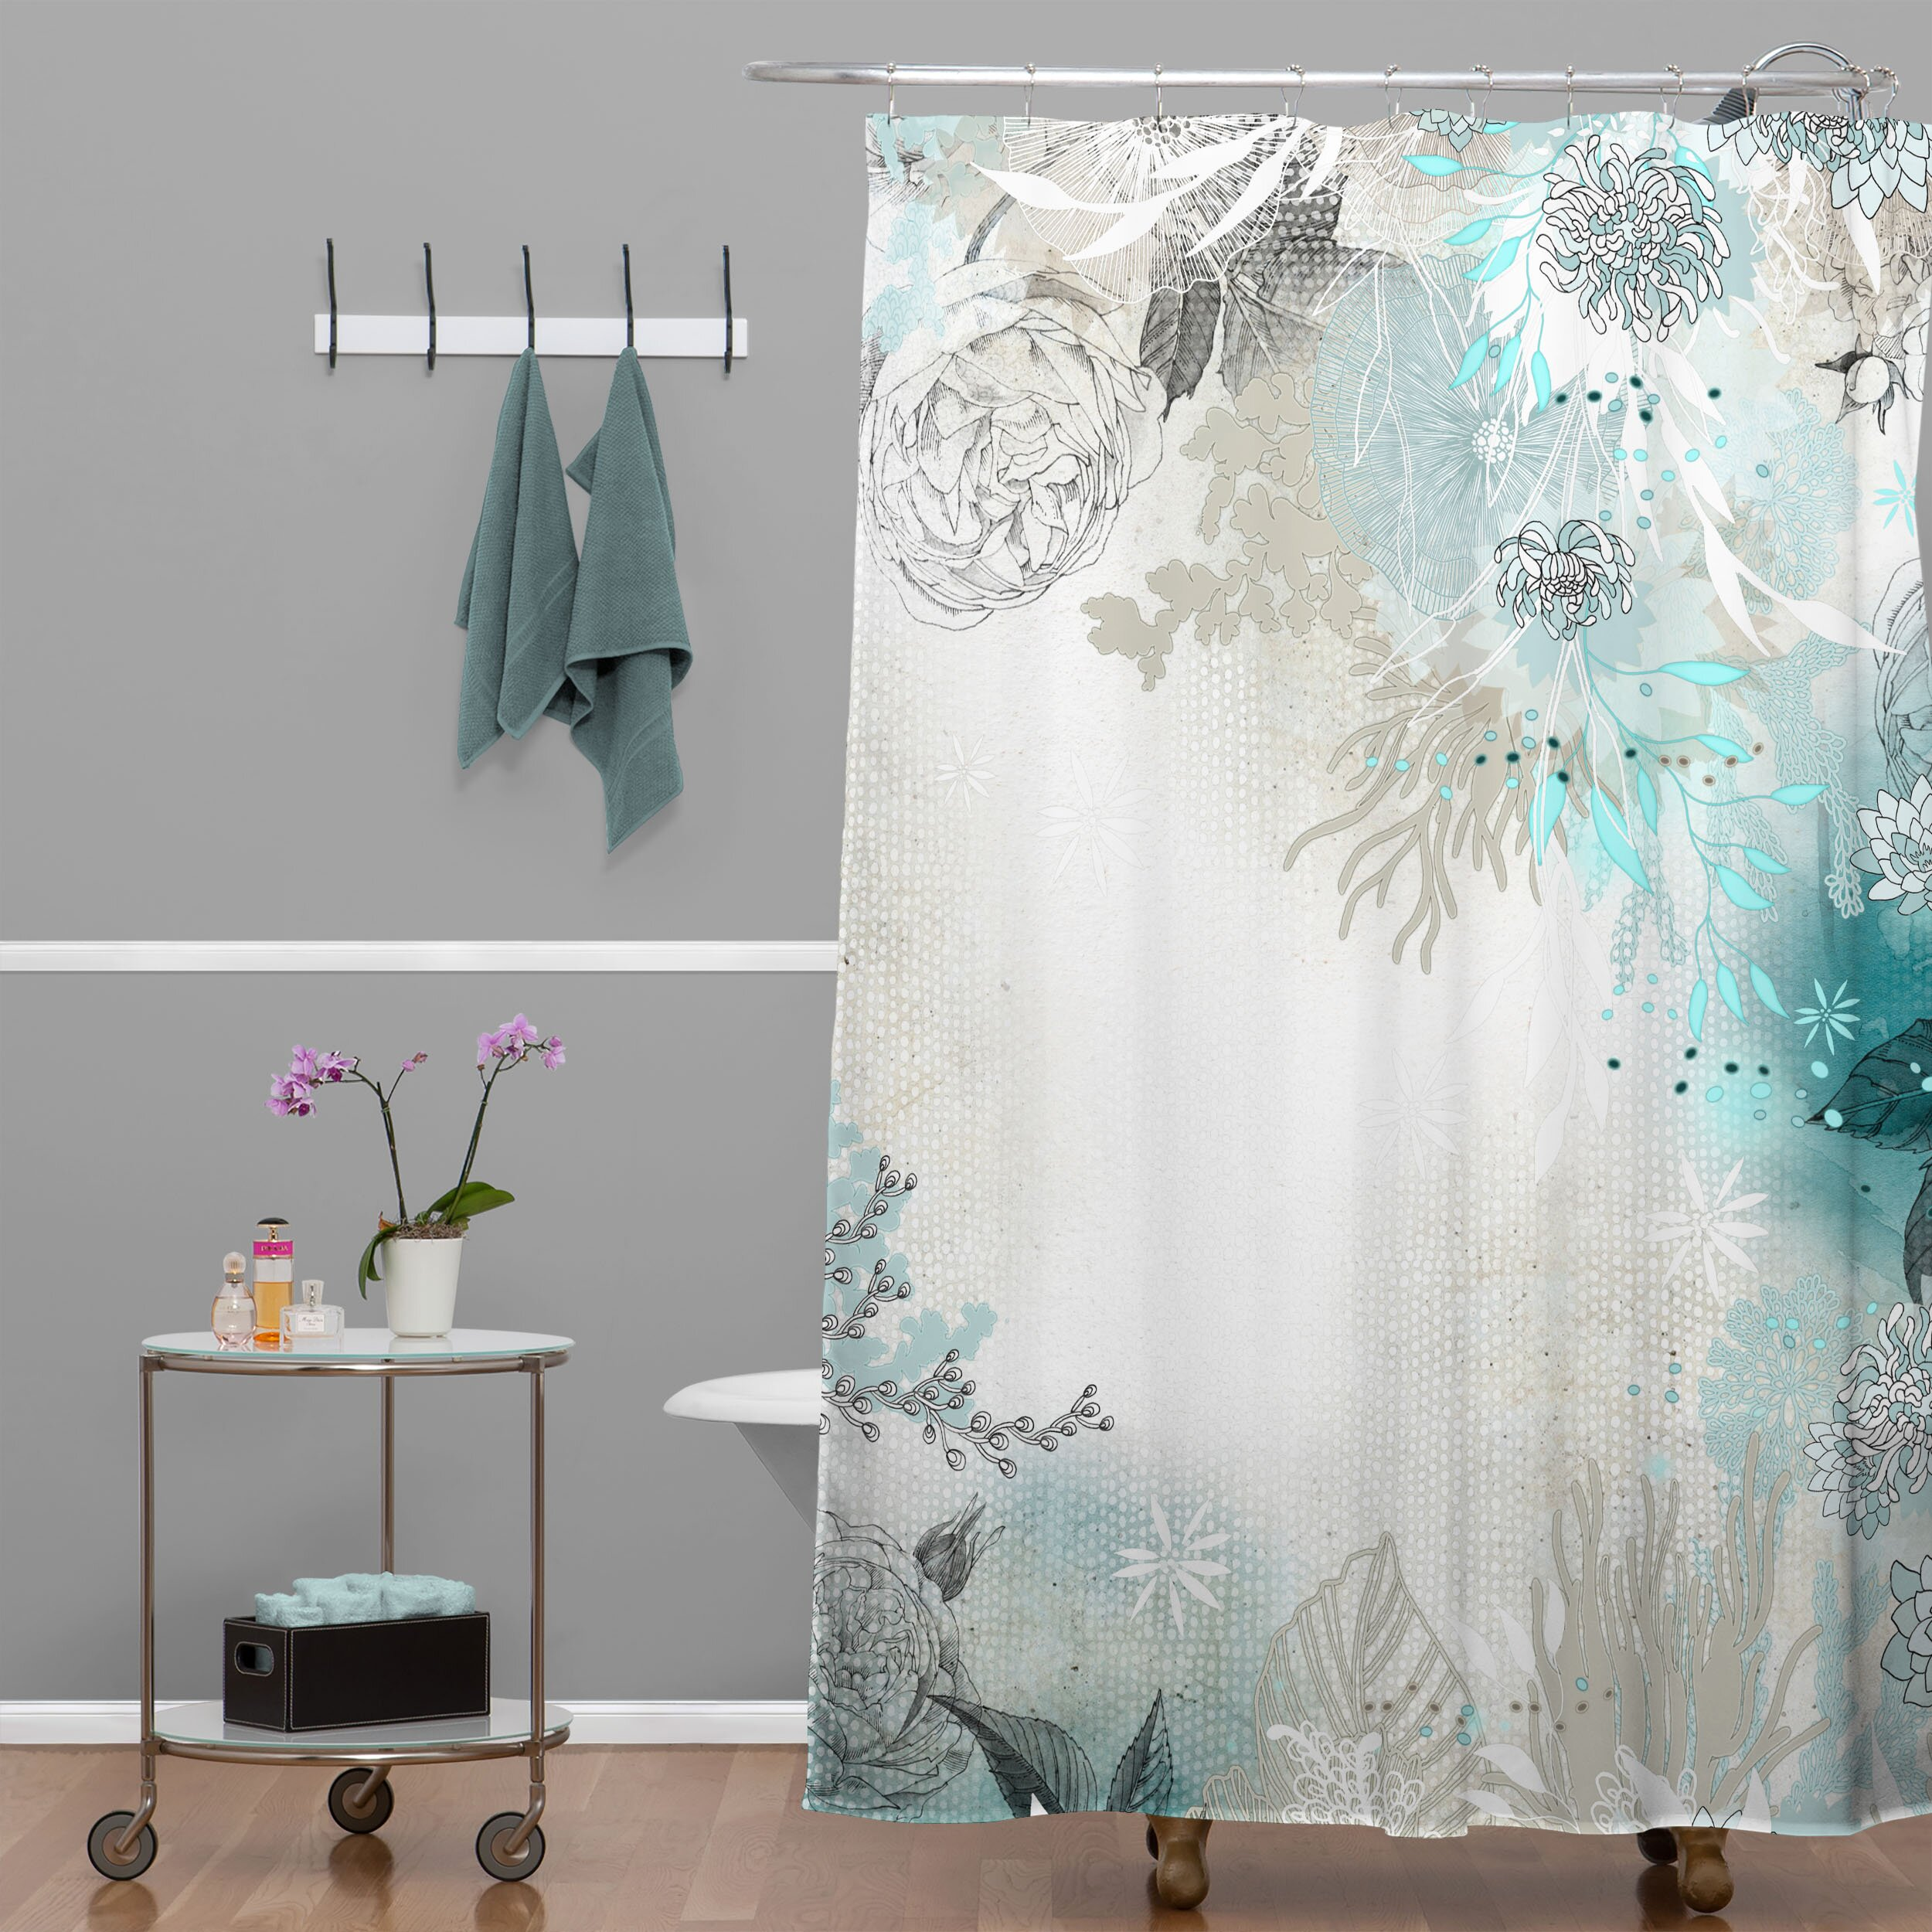 Mint green shower curtain and rugs - Mint Green Shower Curtain And Rugs 1